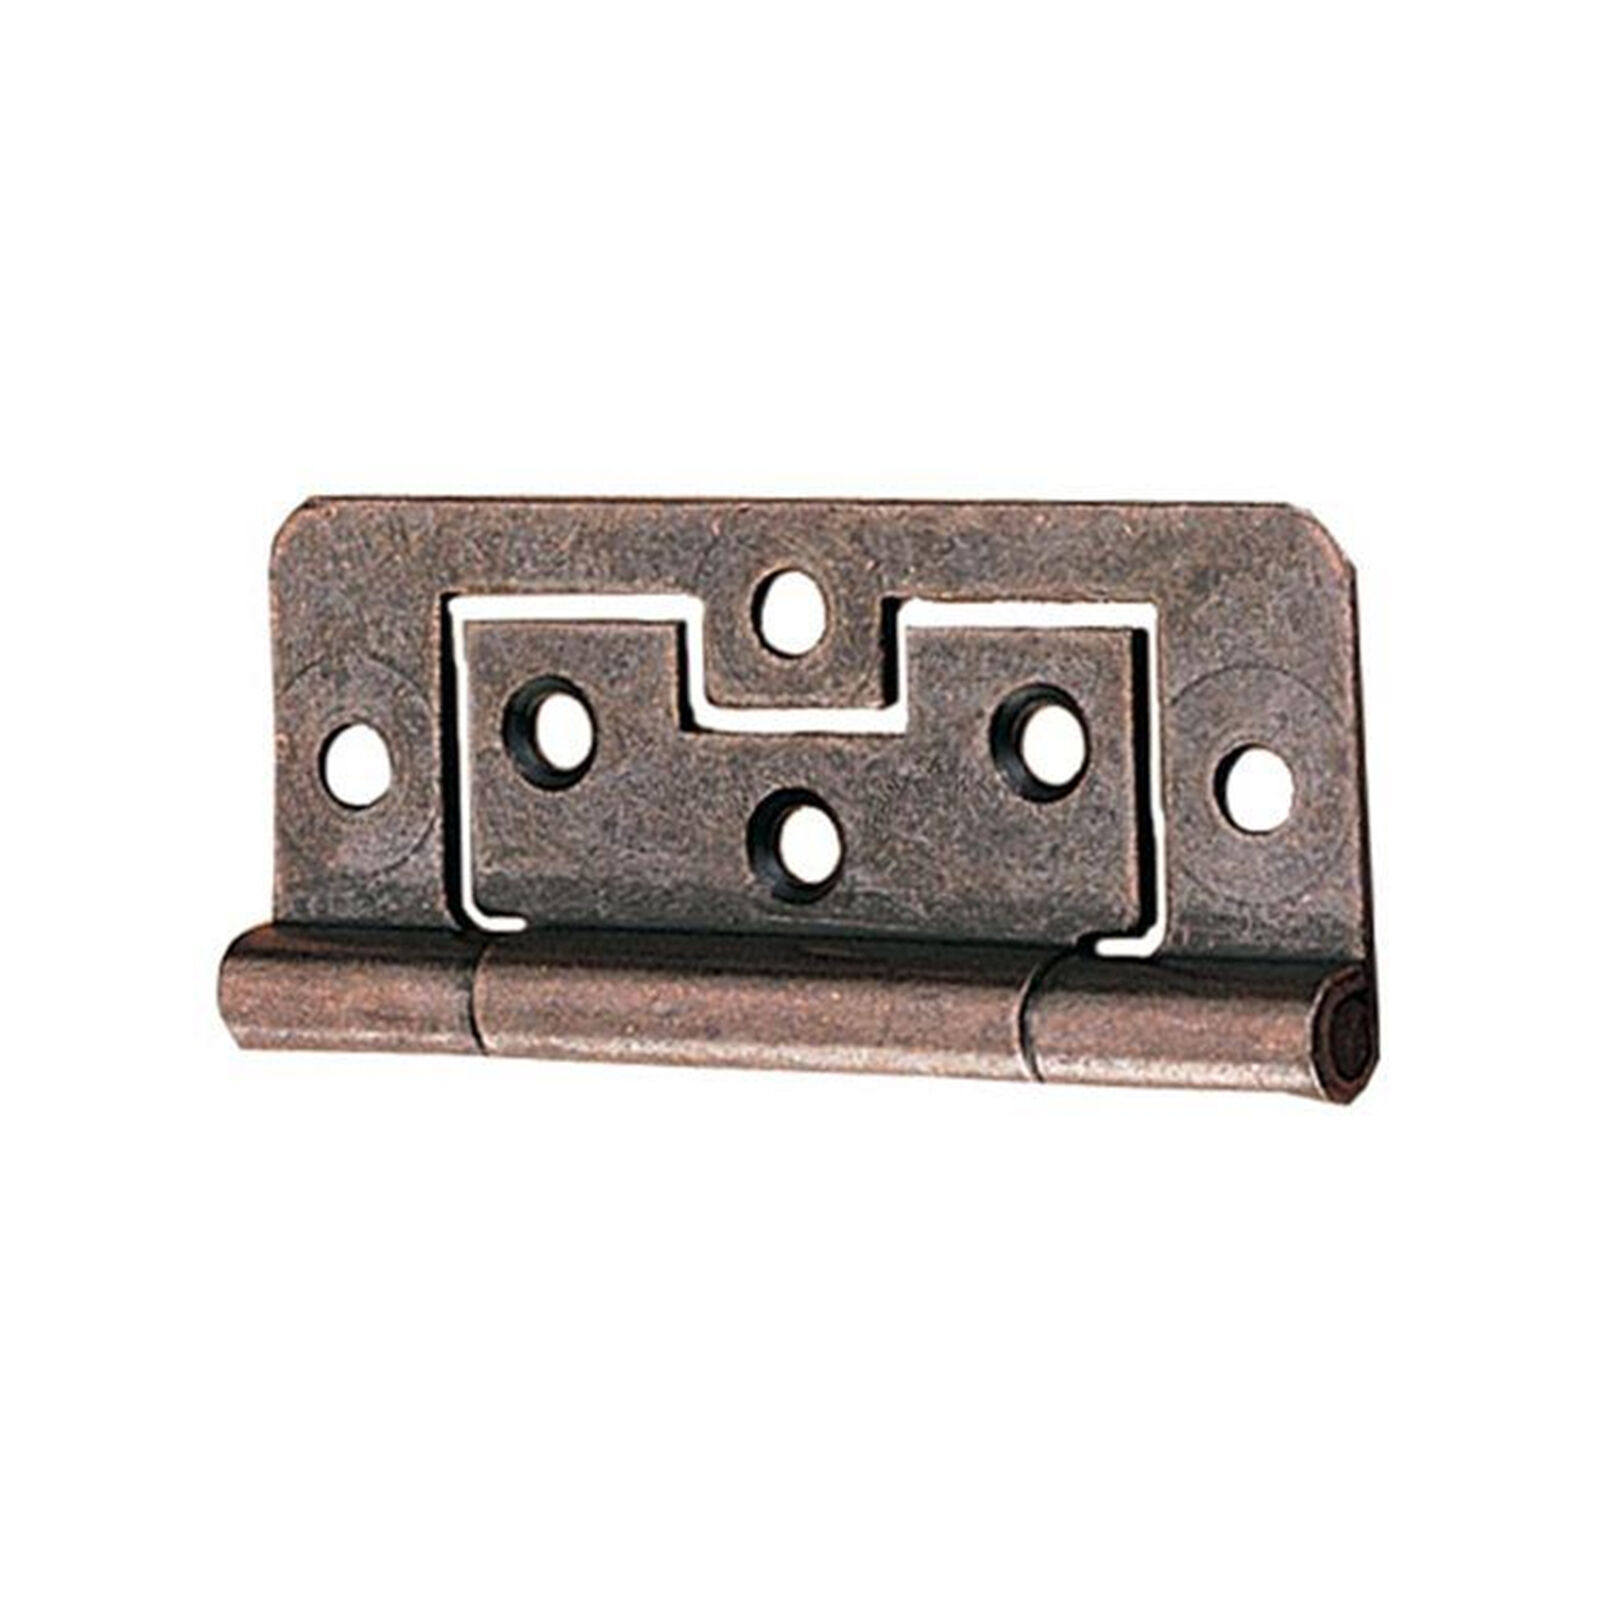 Picture of: 5 8 X 1 1 2 Non Mortise Cabinet Hinge Pair For Sale Online